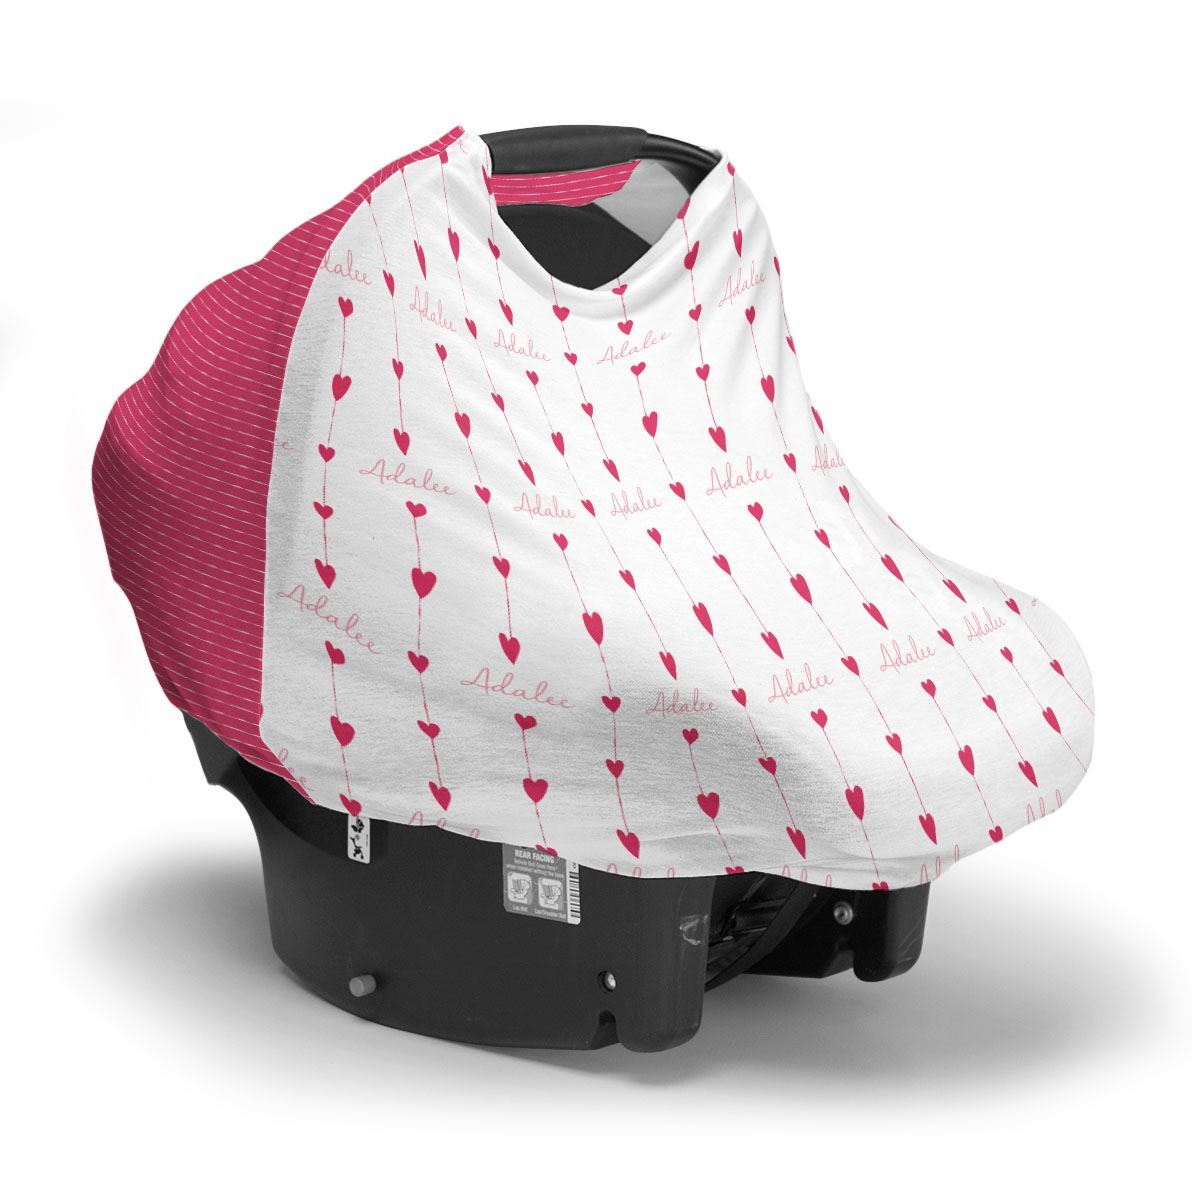 Adalee's Valentine Hearts | Car Seat Cover (Multi-Use)